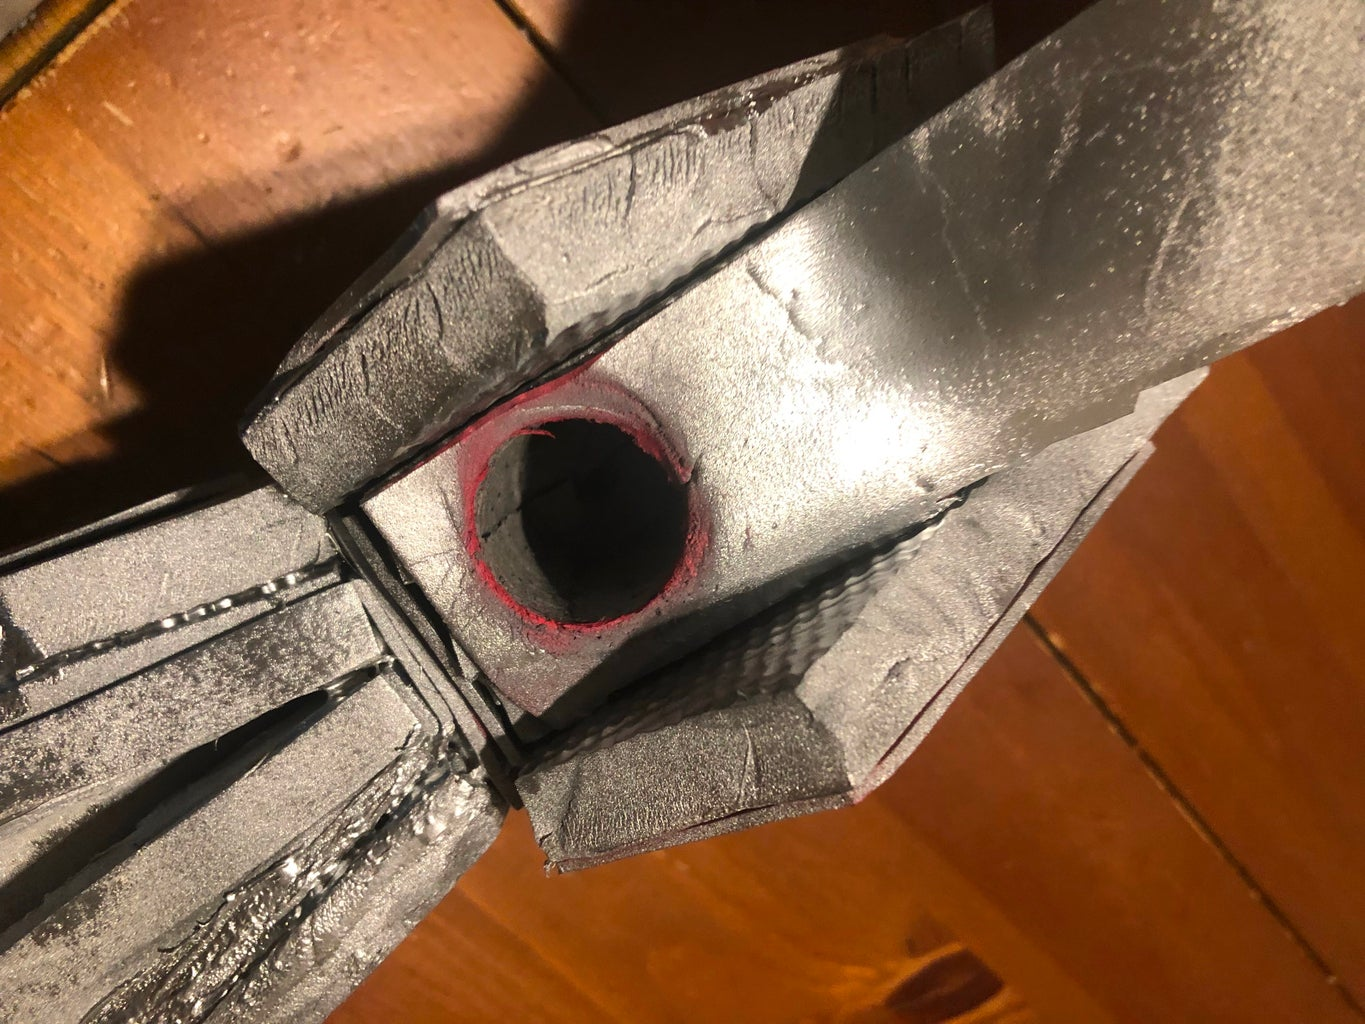 Spray Painting and Drilling a Hole